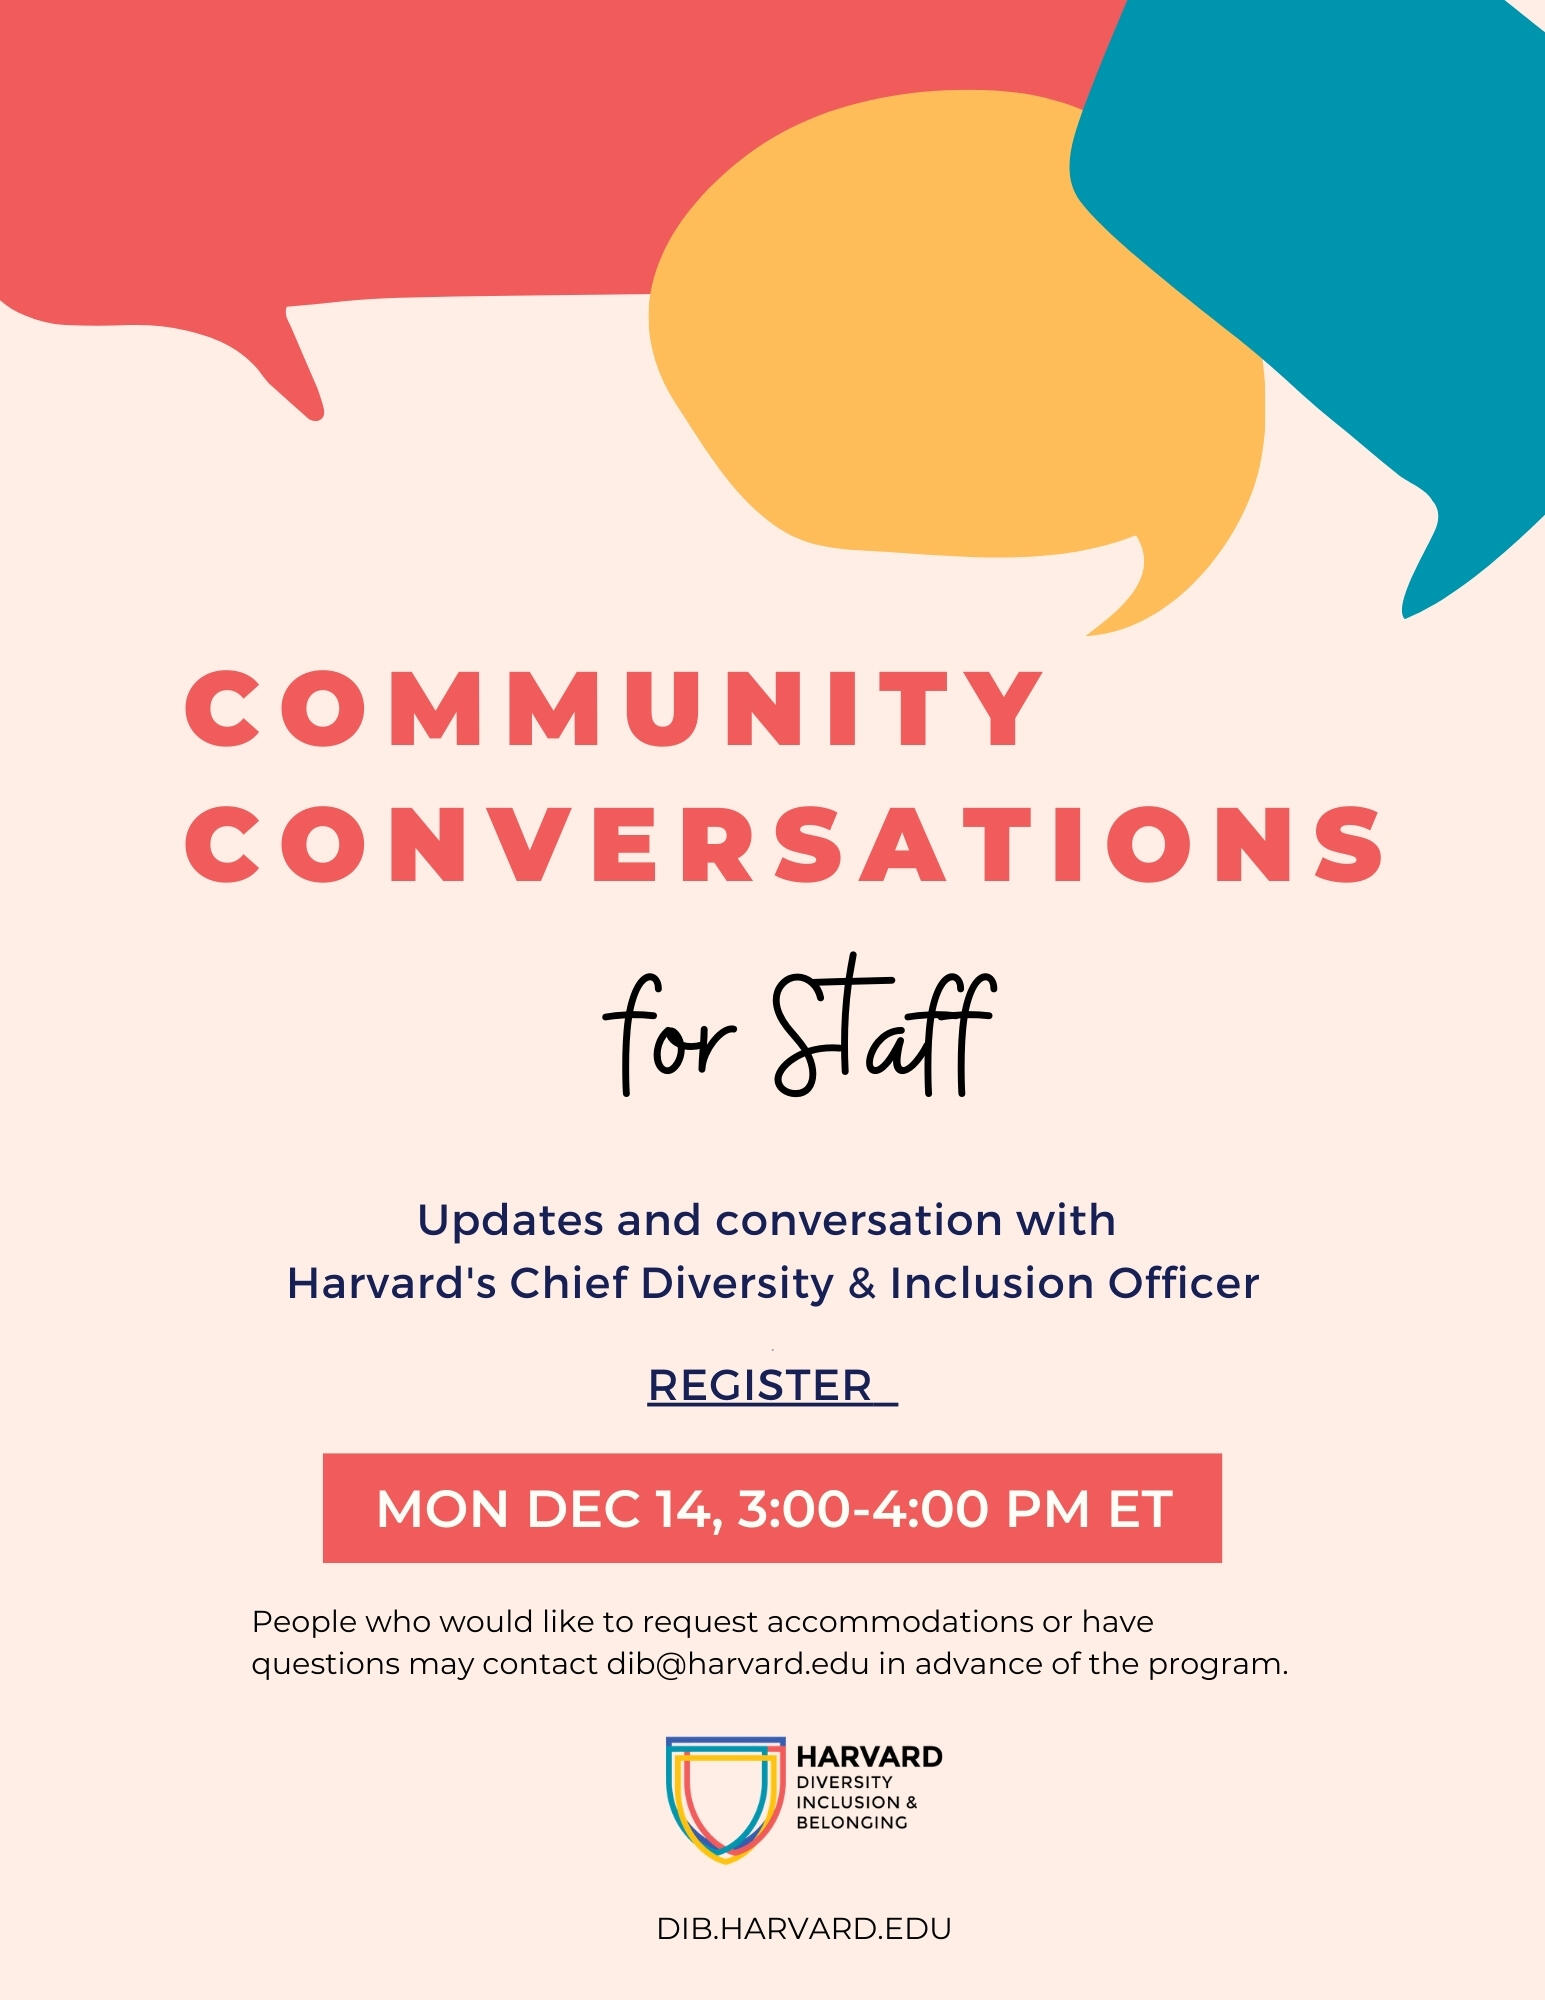 Community Conversations for Staff Flyer